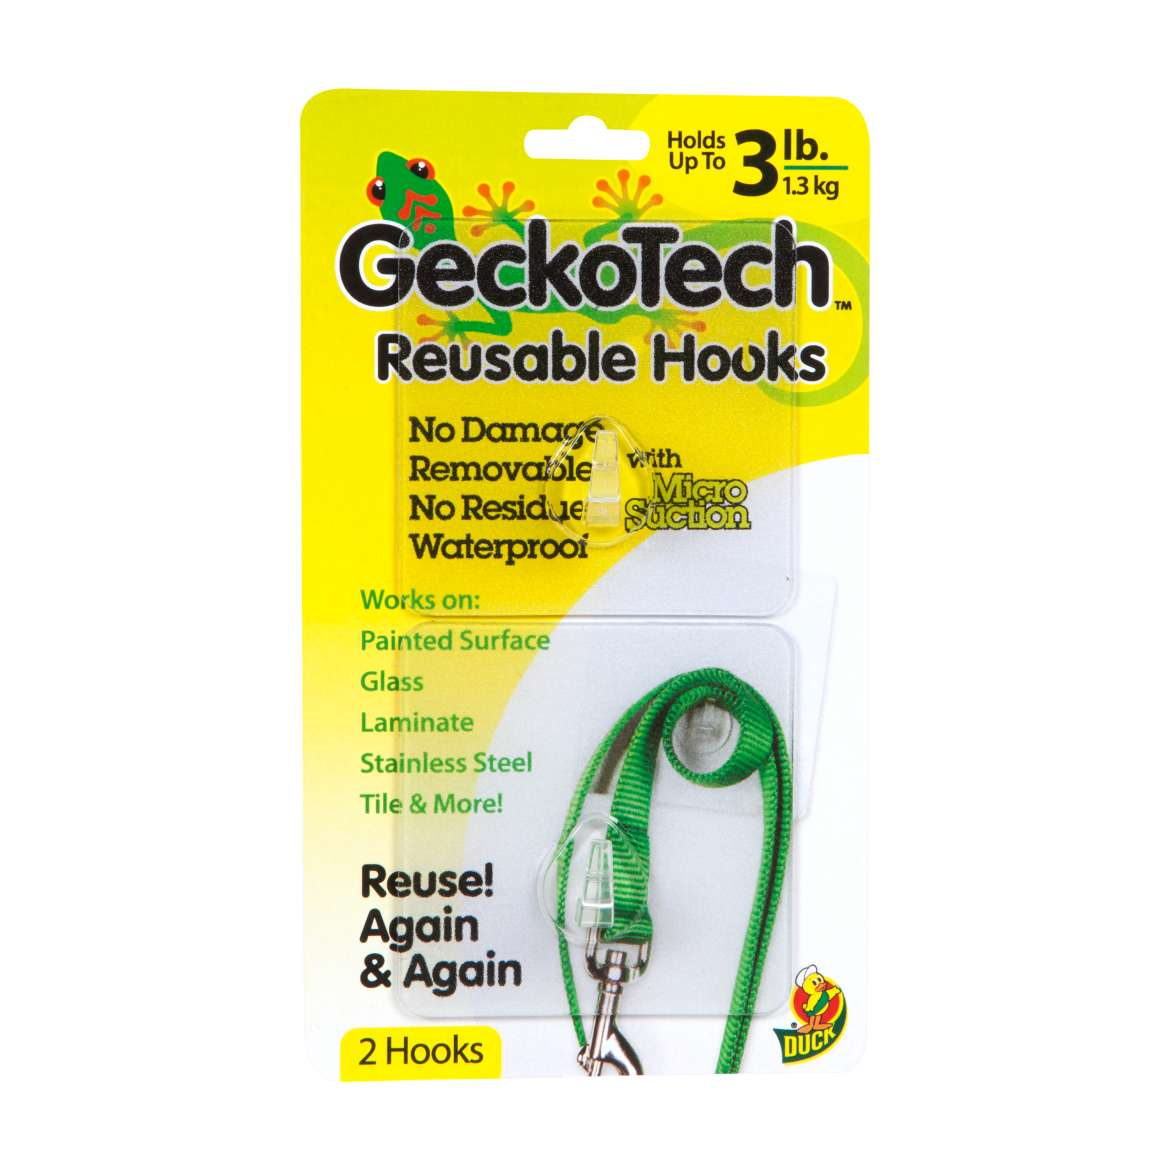 GeckoTech™ Removable Hook - Clear, 2 pk, Holds up to 3 lb. Image